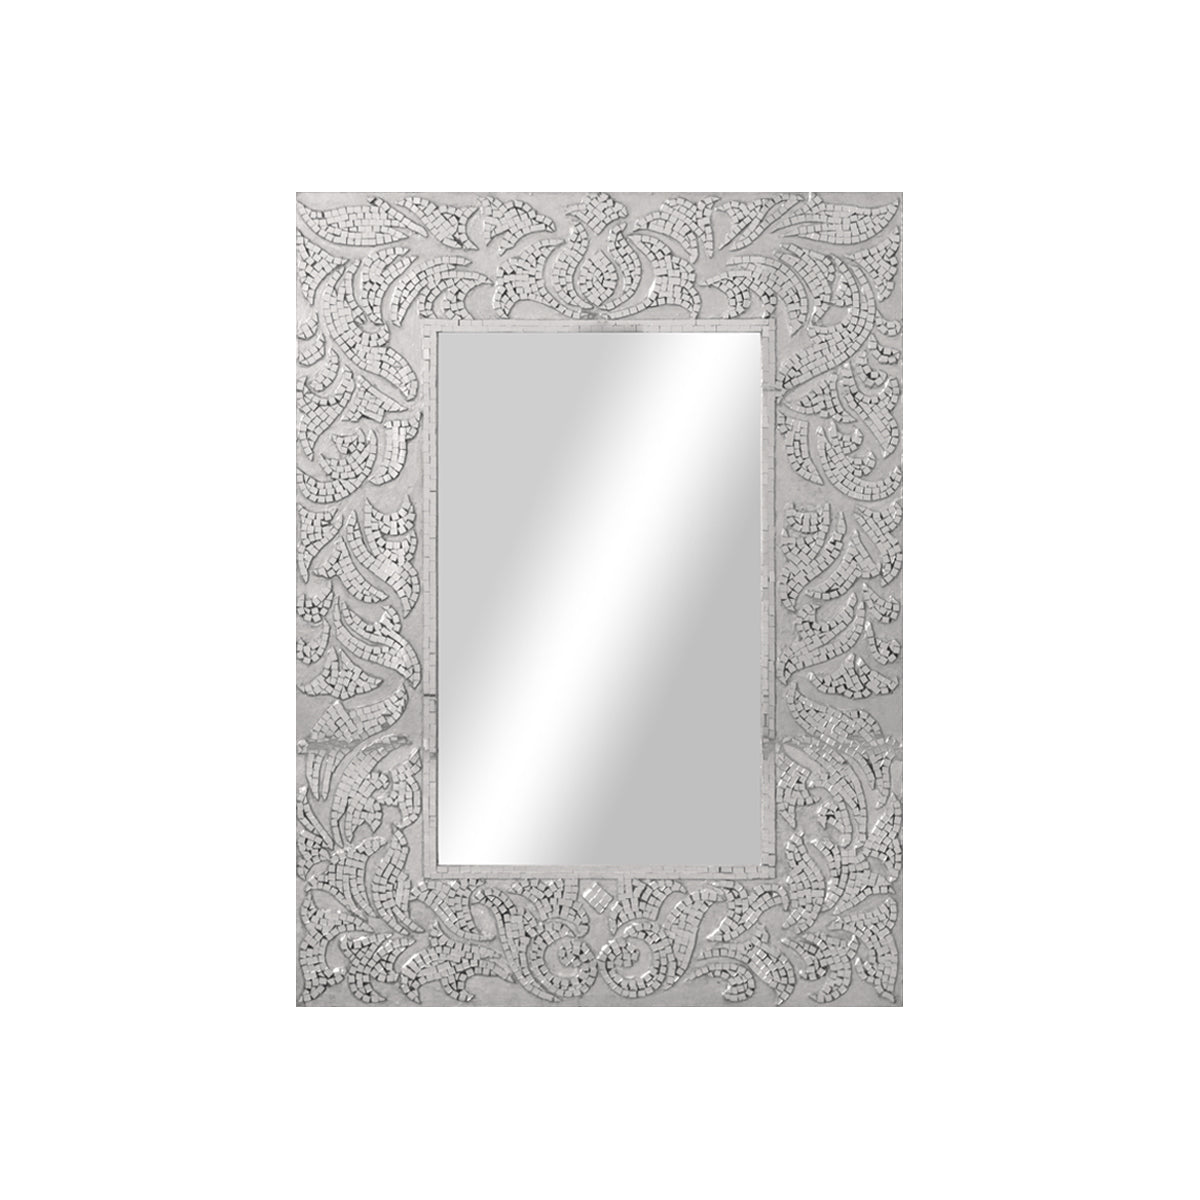 Eden Damask Mirror